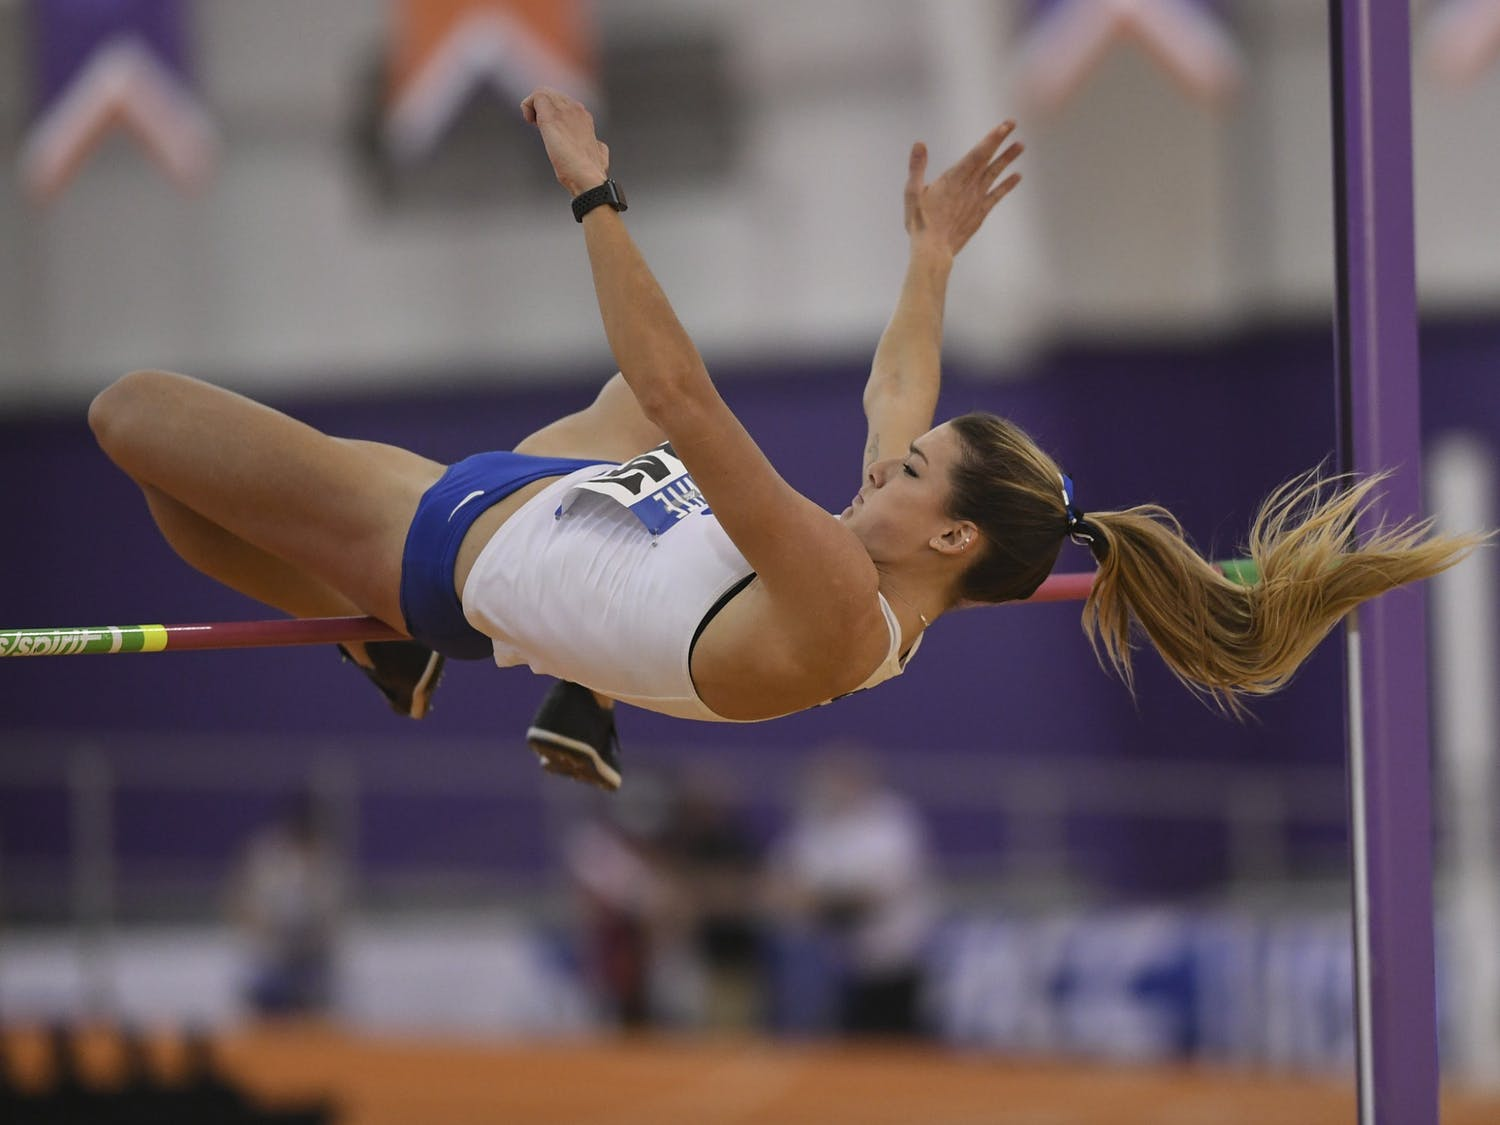 Erin Marsh excelled in the women's high jump and 60m hurdles, coming in second place in both.